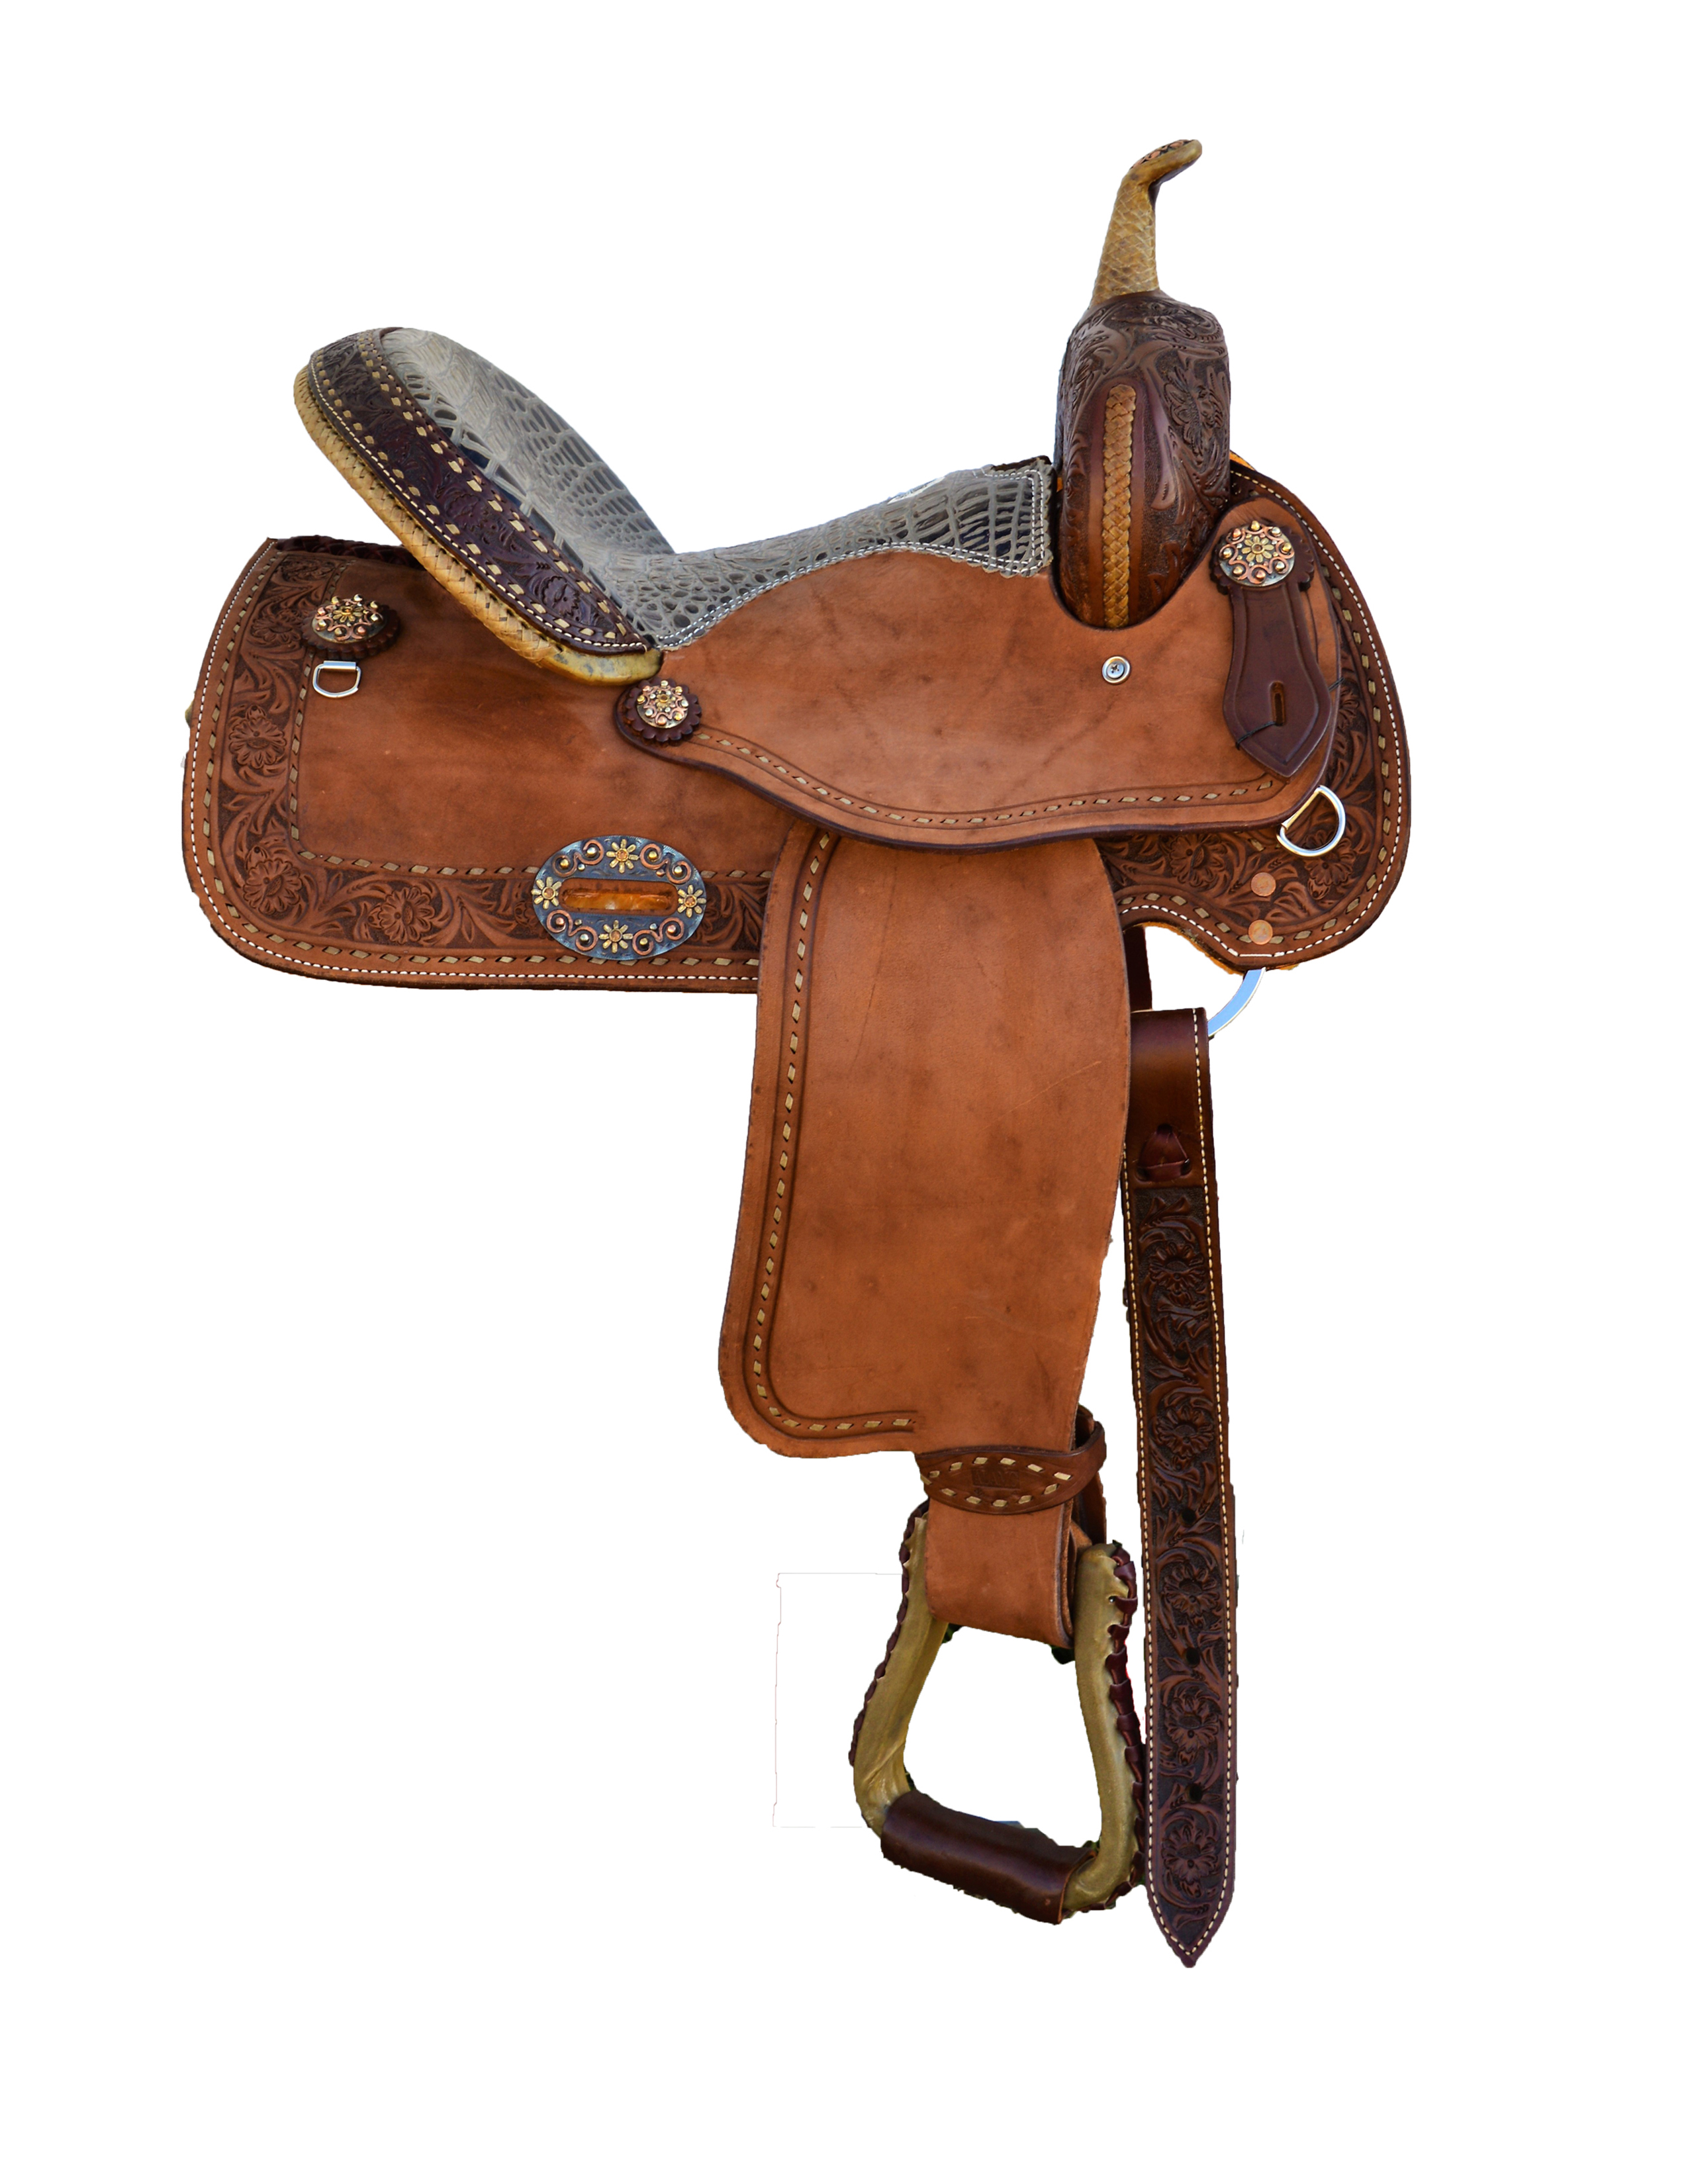 0118  Barrel Saddle in Toast Leather Smooth Roughout W/ Tooled Border Tool